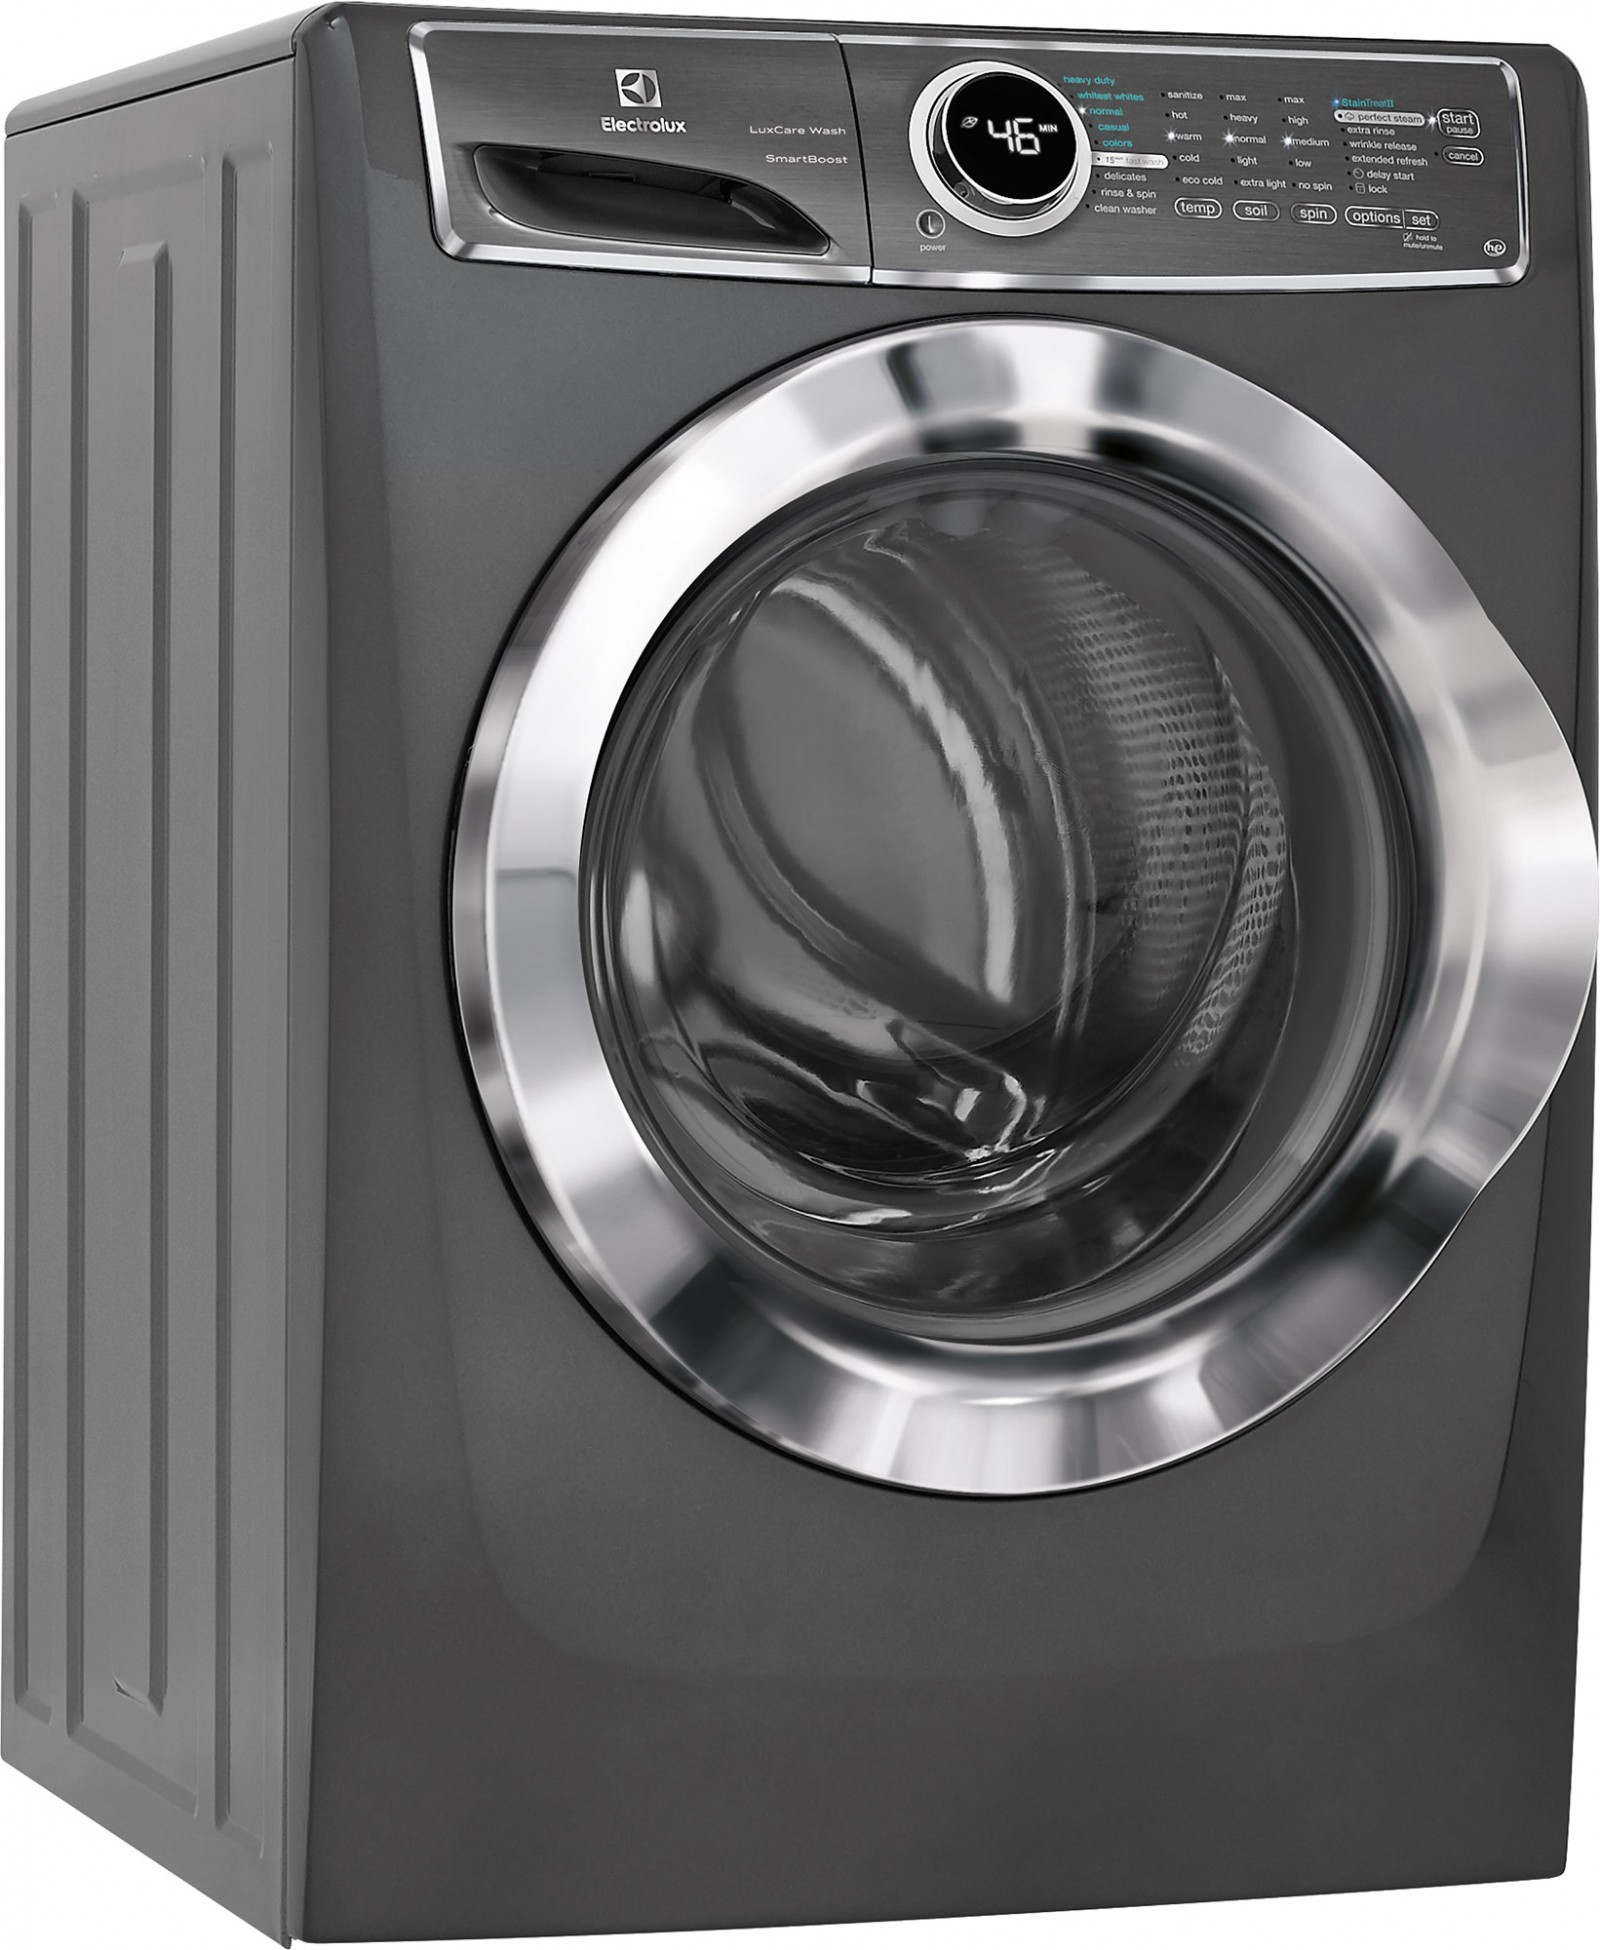 Picturesque Electrolux Washing Machine Review Boost Revolution 2016 Electrolux Washer Reviews 2015 Electrolux Washing Machine Reviews 2018 houzz 01 Electrolux Washer Reviews